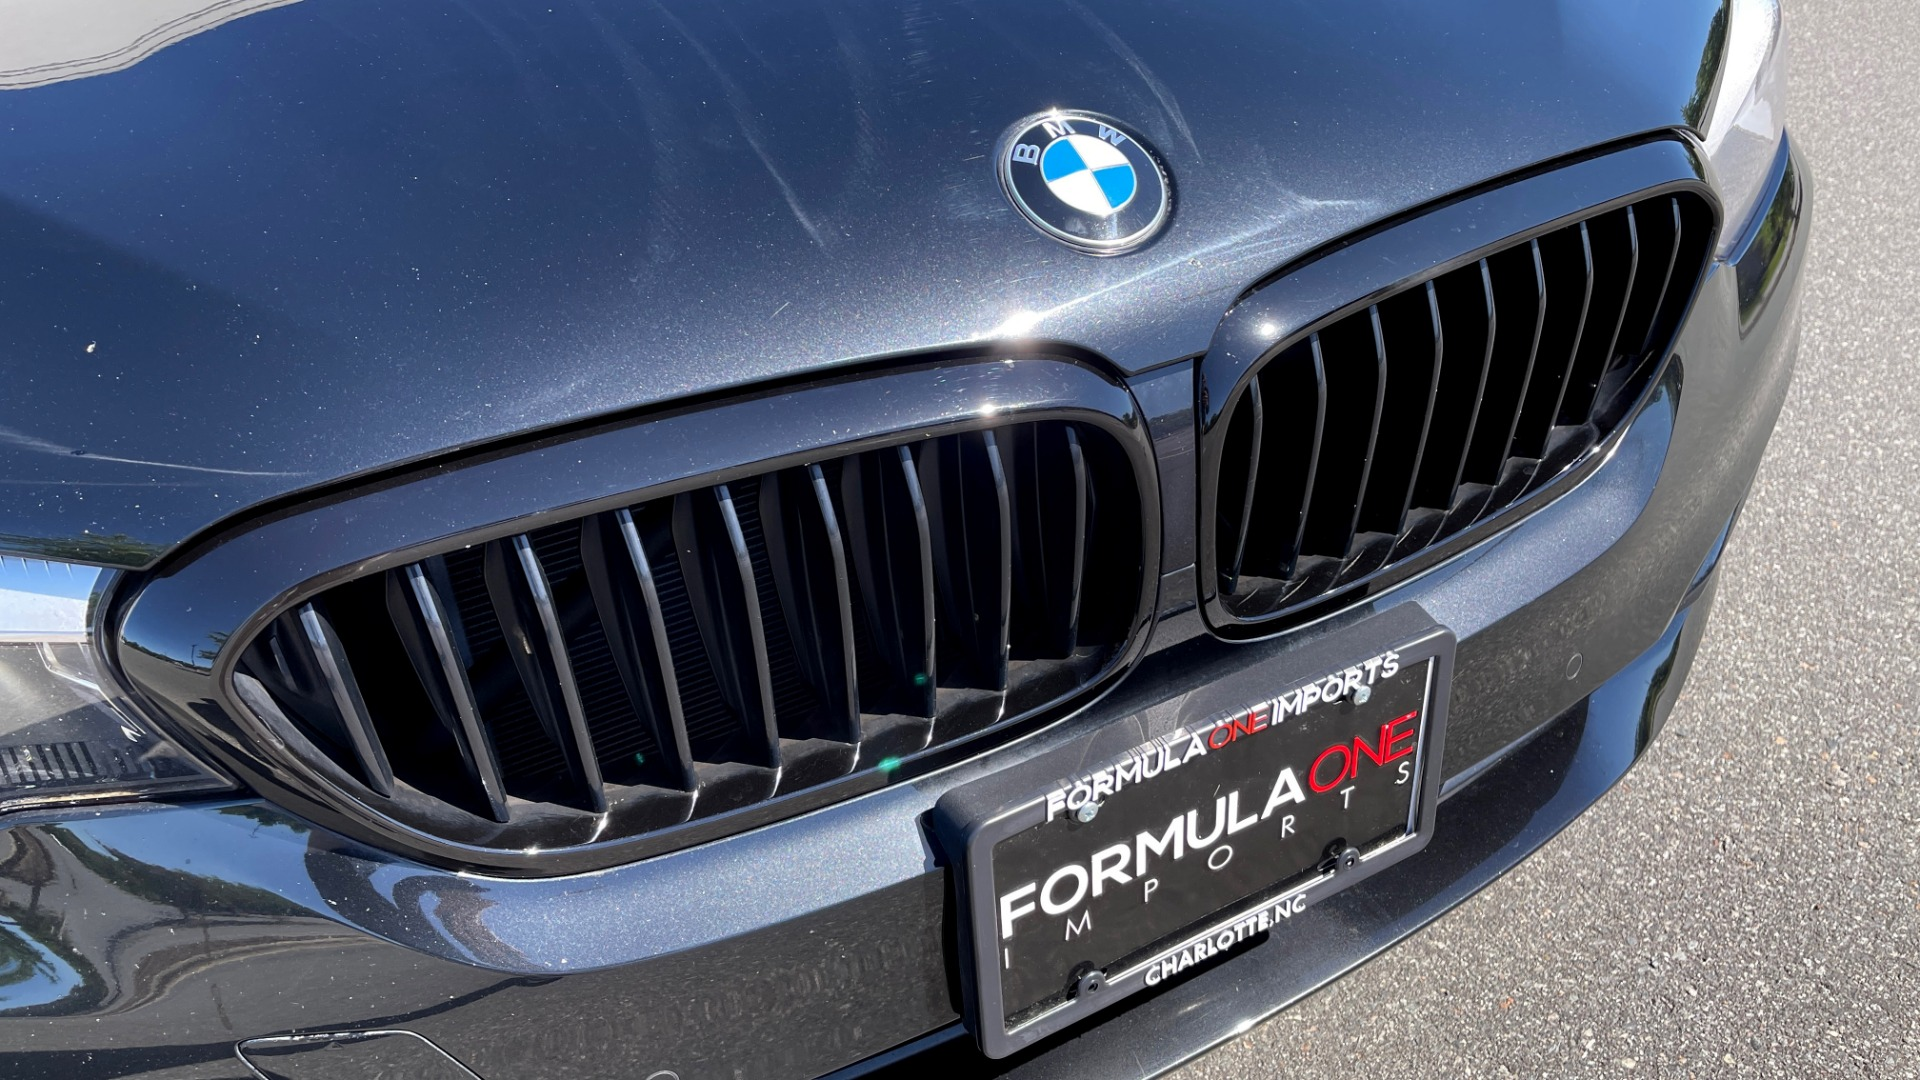 Used 2018 BMW 5 SERIES 540I XDRIVE PREMIUM / NAV / PARK ASST / WIRELESS CHARGING H/K SND for sale $38,395 at Formula Imports in Charlotte NC 28227 16